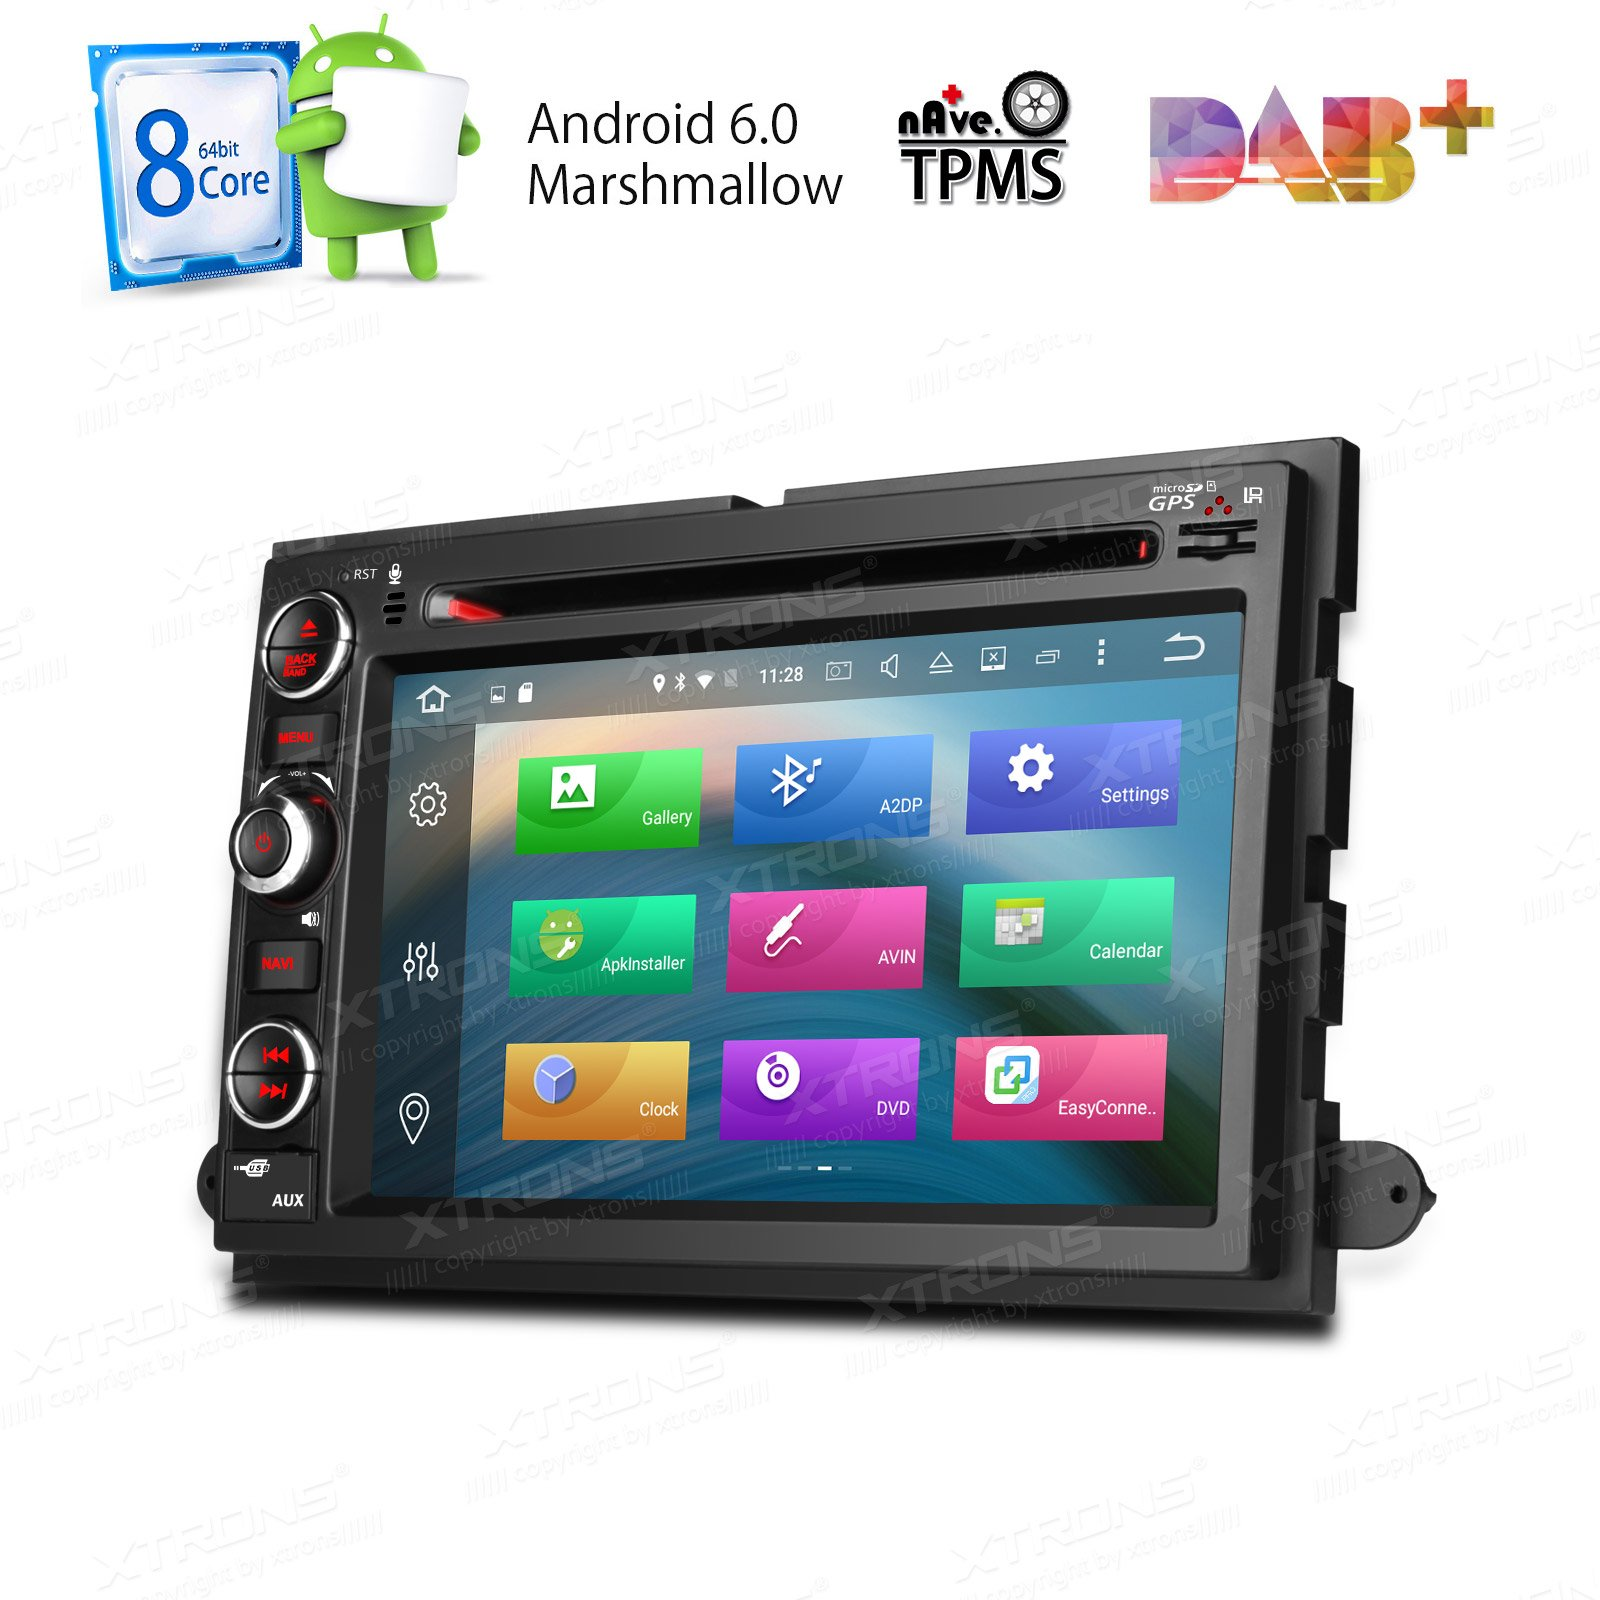 XTRONS 7 Inch Android 6.0 Octa-Core 2G RAM 32GB ROM Capacitive Touch Screen Car Stereo Radio DVD Player GPS CANbus Screen Mirroring Function OBD2 Tire Pressure Monitoring for FORD F-105 Mustang